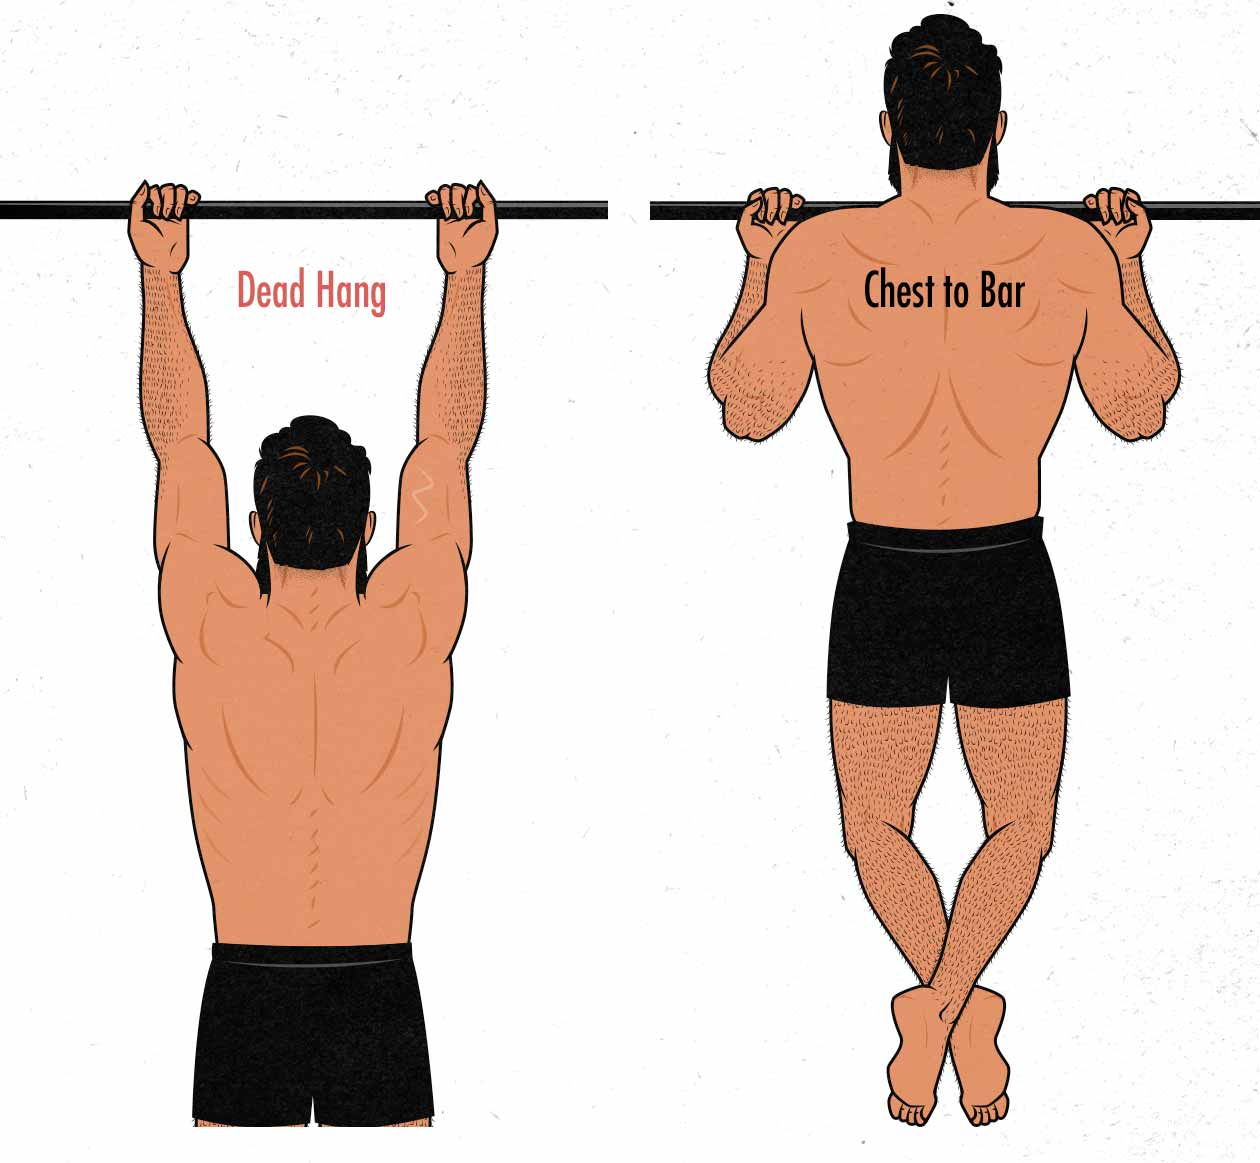 Illustration of chin-ups done with a full range of motion: from a dead hang and bringing chest to bar.